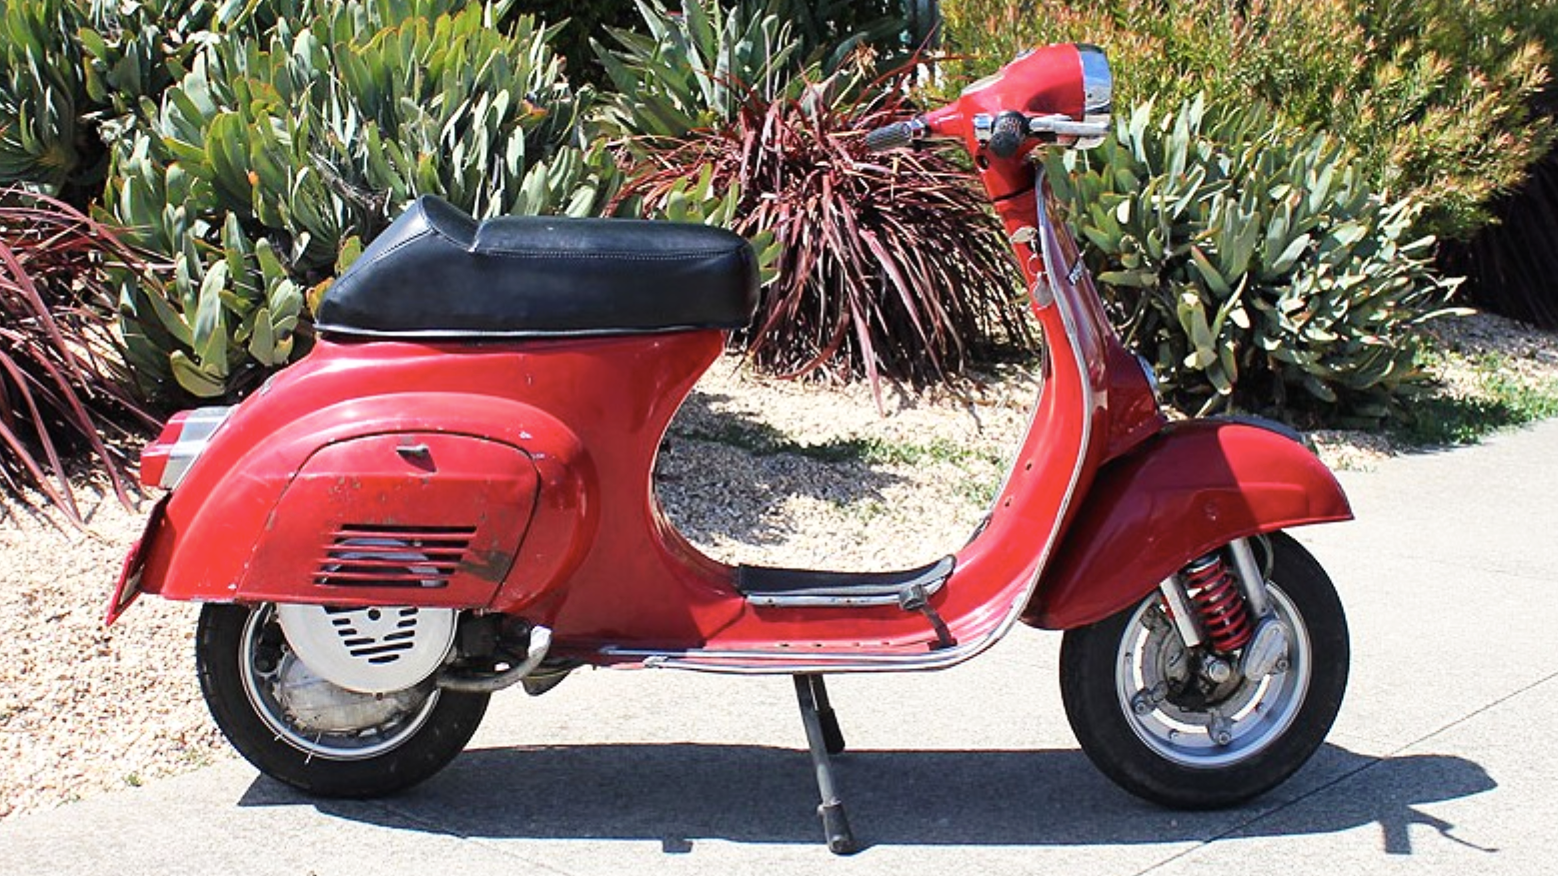 1975 VESPA PRIMAVERA (J-2) - They are the easiest to ride of all of the vintage scooters. Conceived as a light 50cc city-scooter, Piaggio realized the potential of the design with the 125cc version - the Primavera.